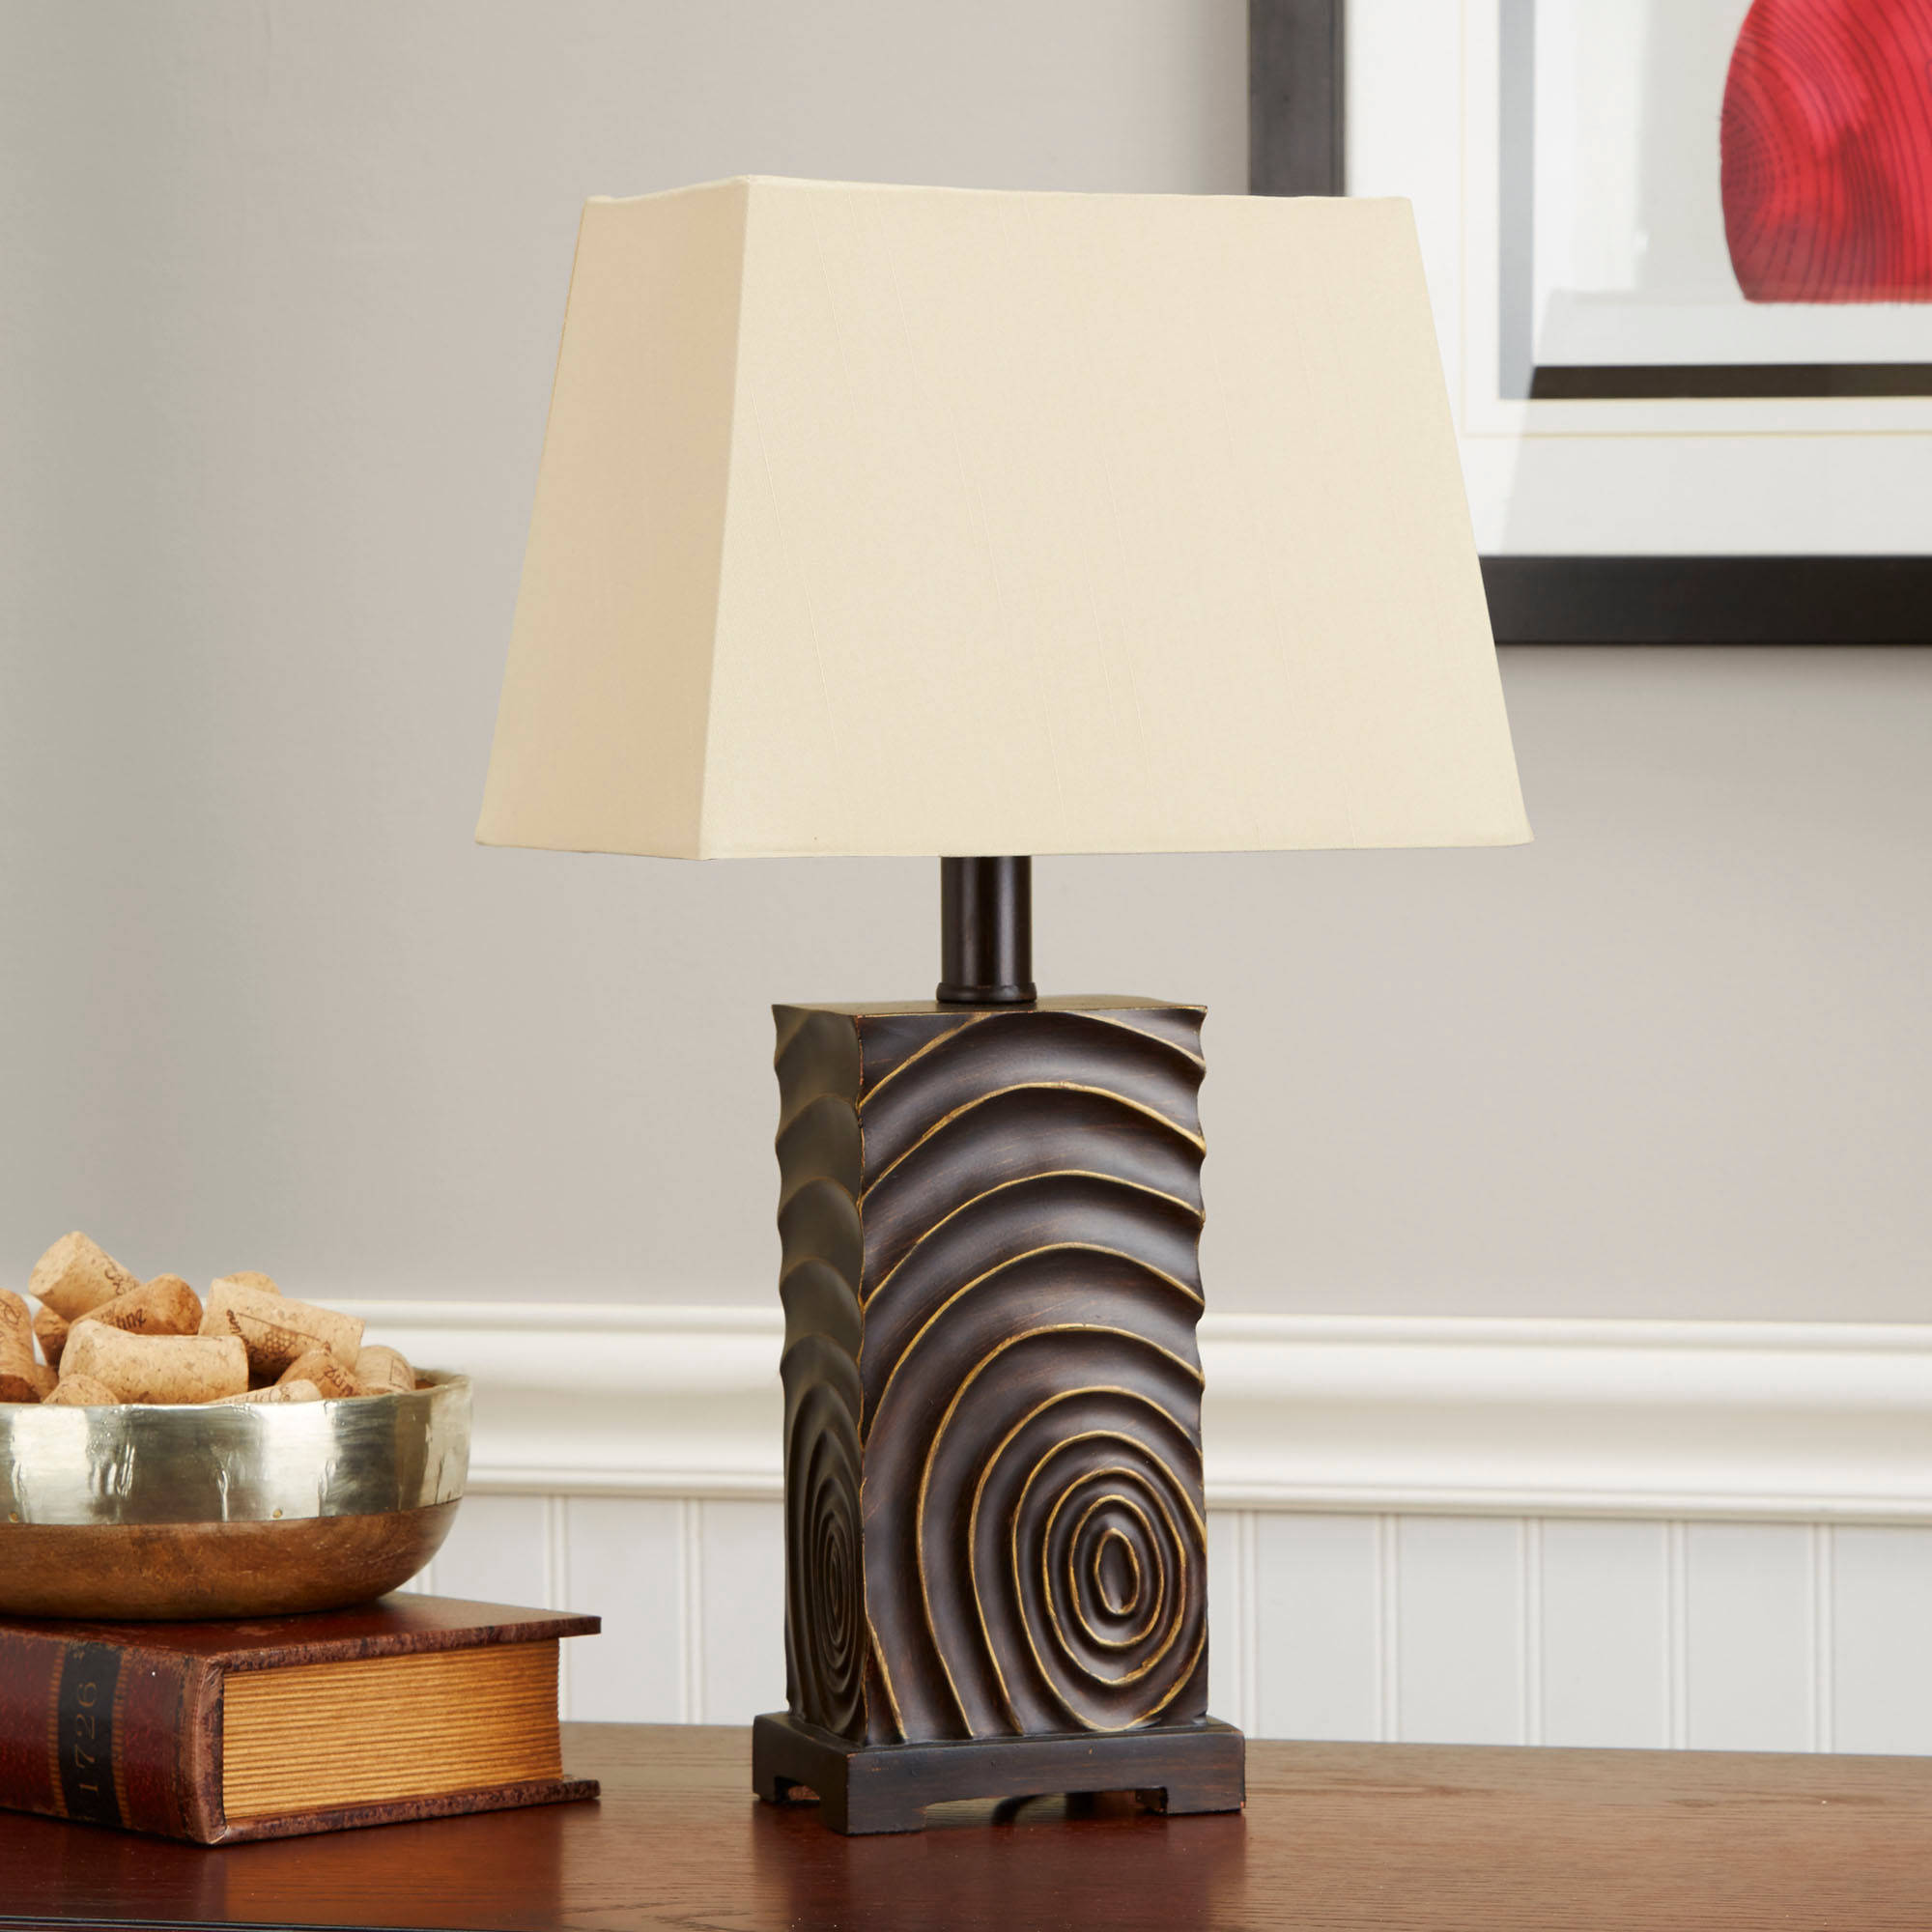 Better Homes and Gardens Thumbprint Lamp, Oil Rubbed Bronze